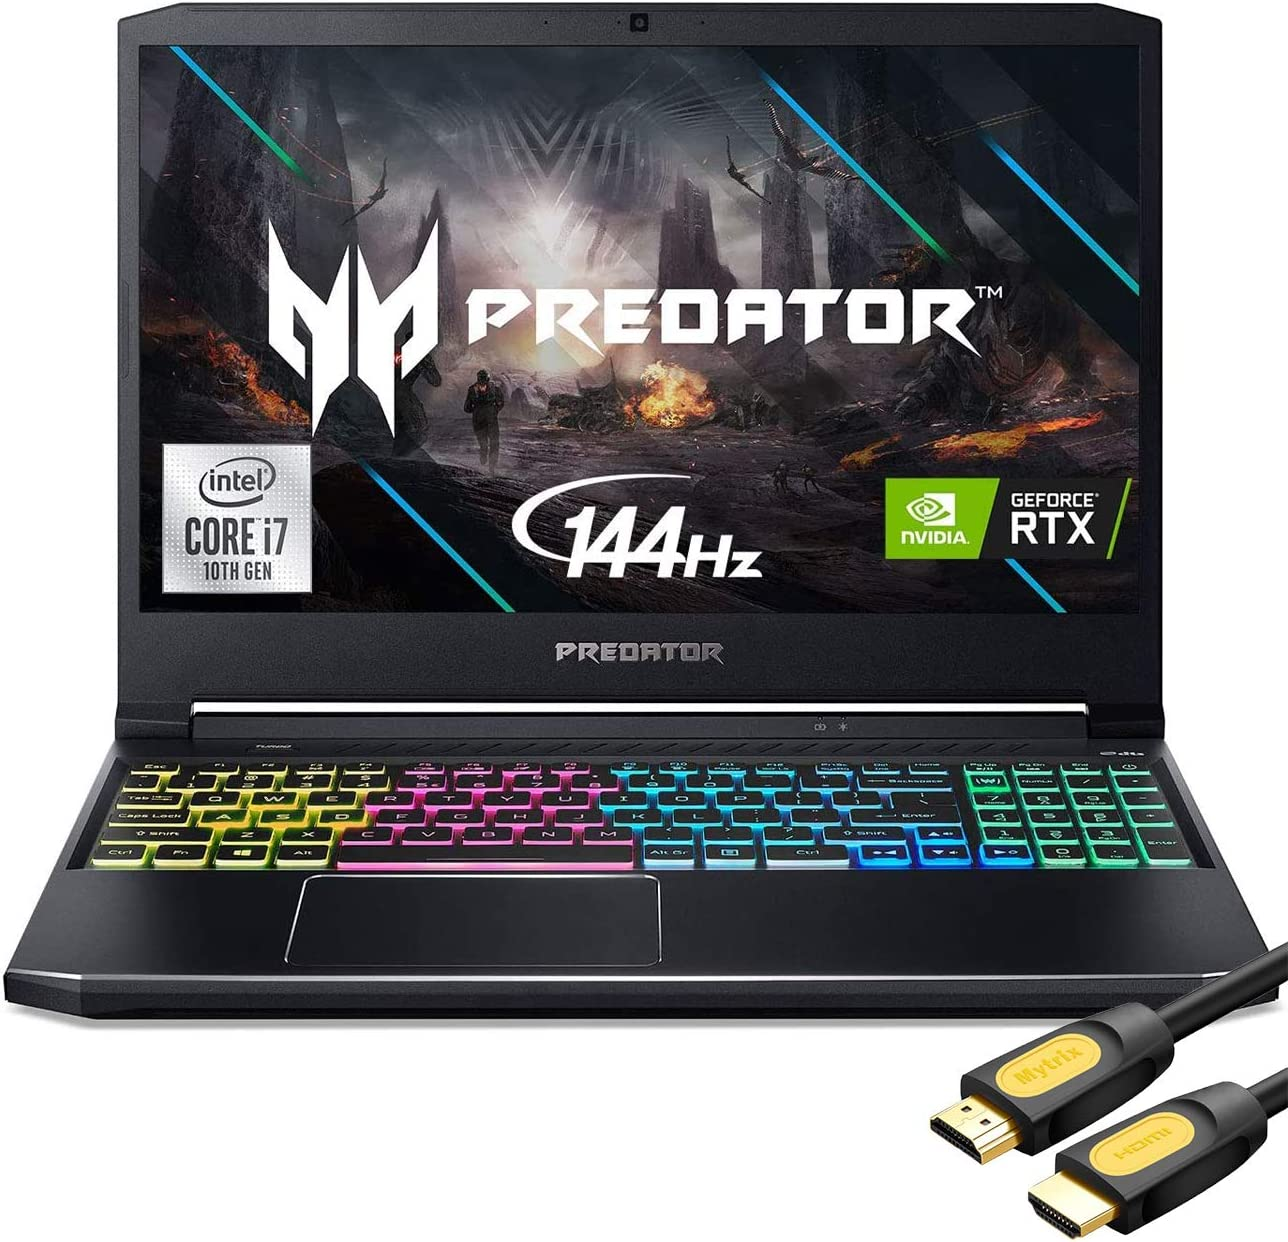 "Acer Predator Helios 300 144Hz Gaming Laptop, 15.6"" 3ms IPS FHD, RTX 2060 OC, i7-10750H 6-Cores up to 5.00 GHz, 16GB RAM, 1TB SSD, Killer Network, RGB KB, WiFi 6, Mytrix HDMI Cable, Win 10"